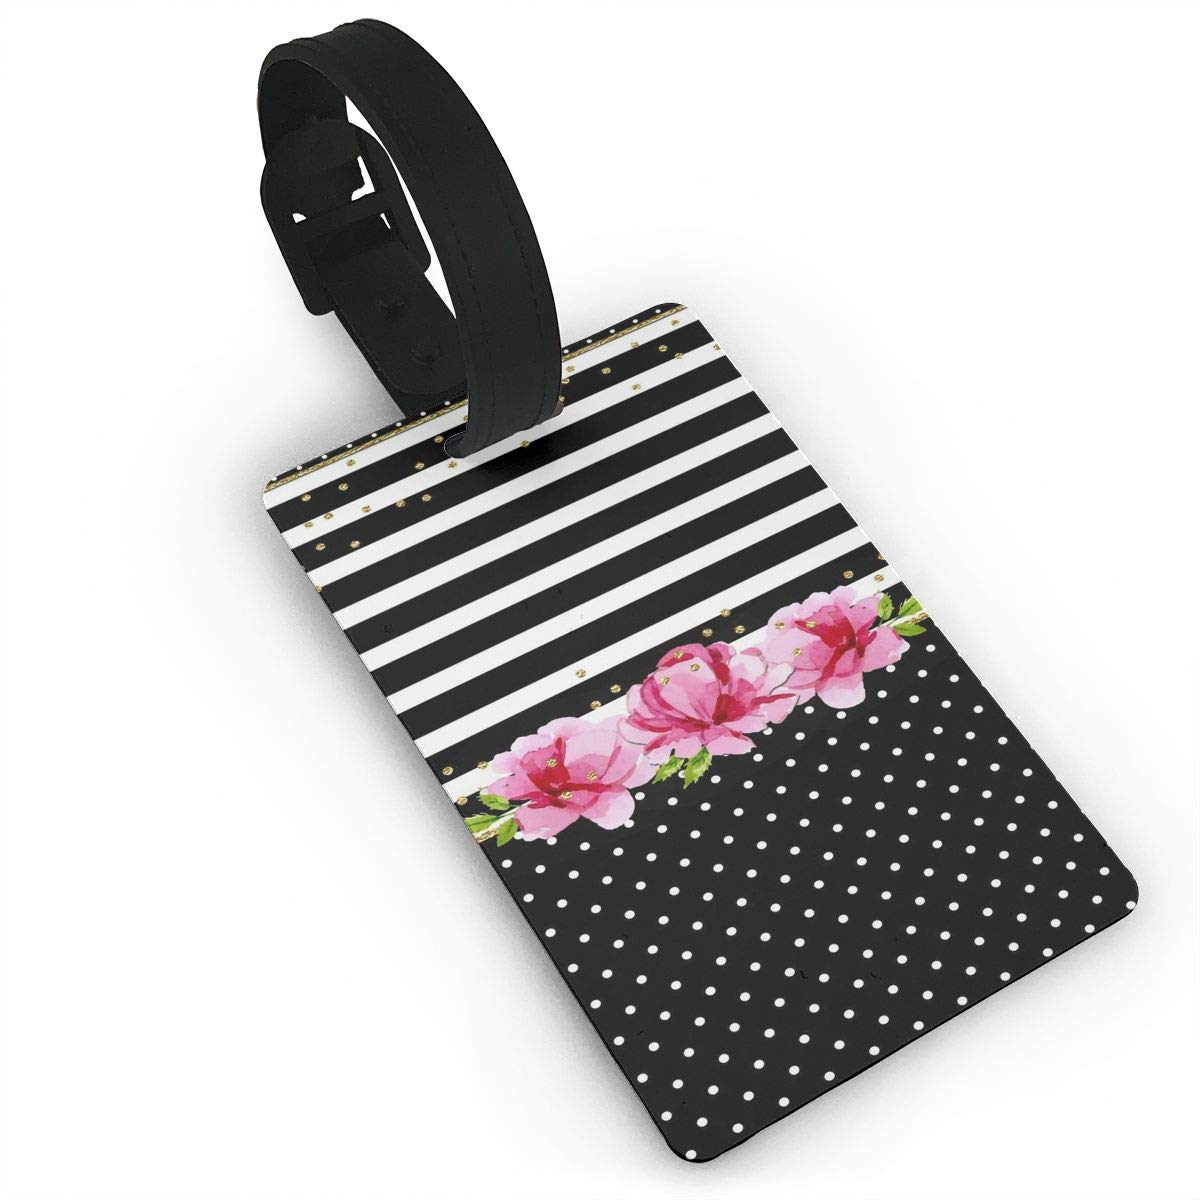 2 Pack Luggage Tags Colorful Polka Dot Handbag Tag For Suitcase Bag Accessories